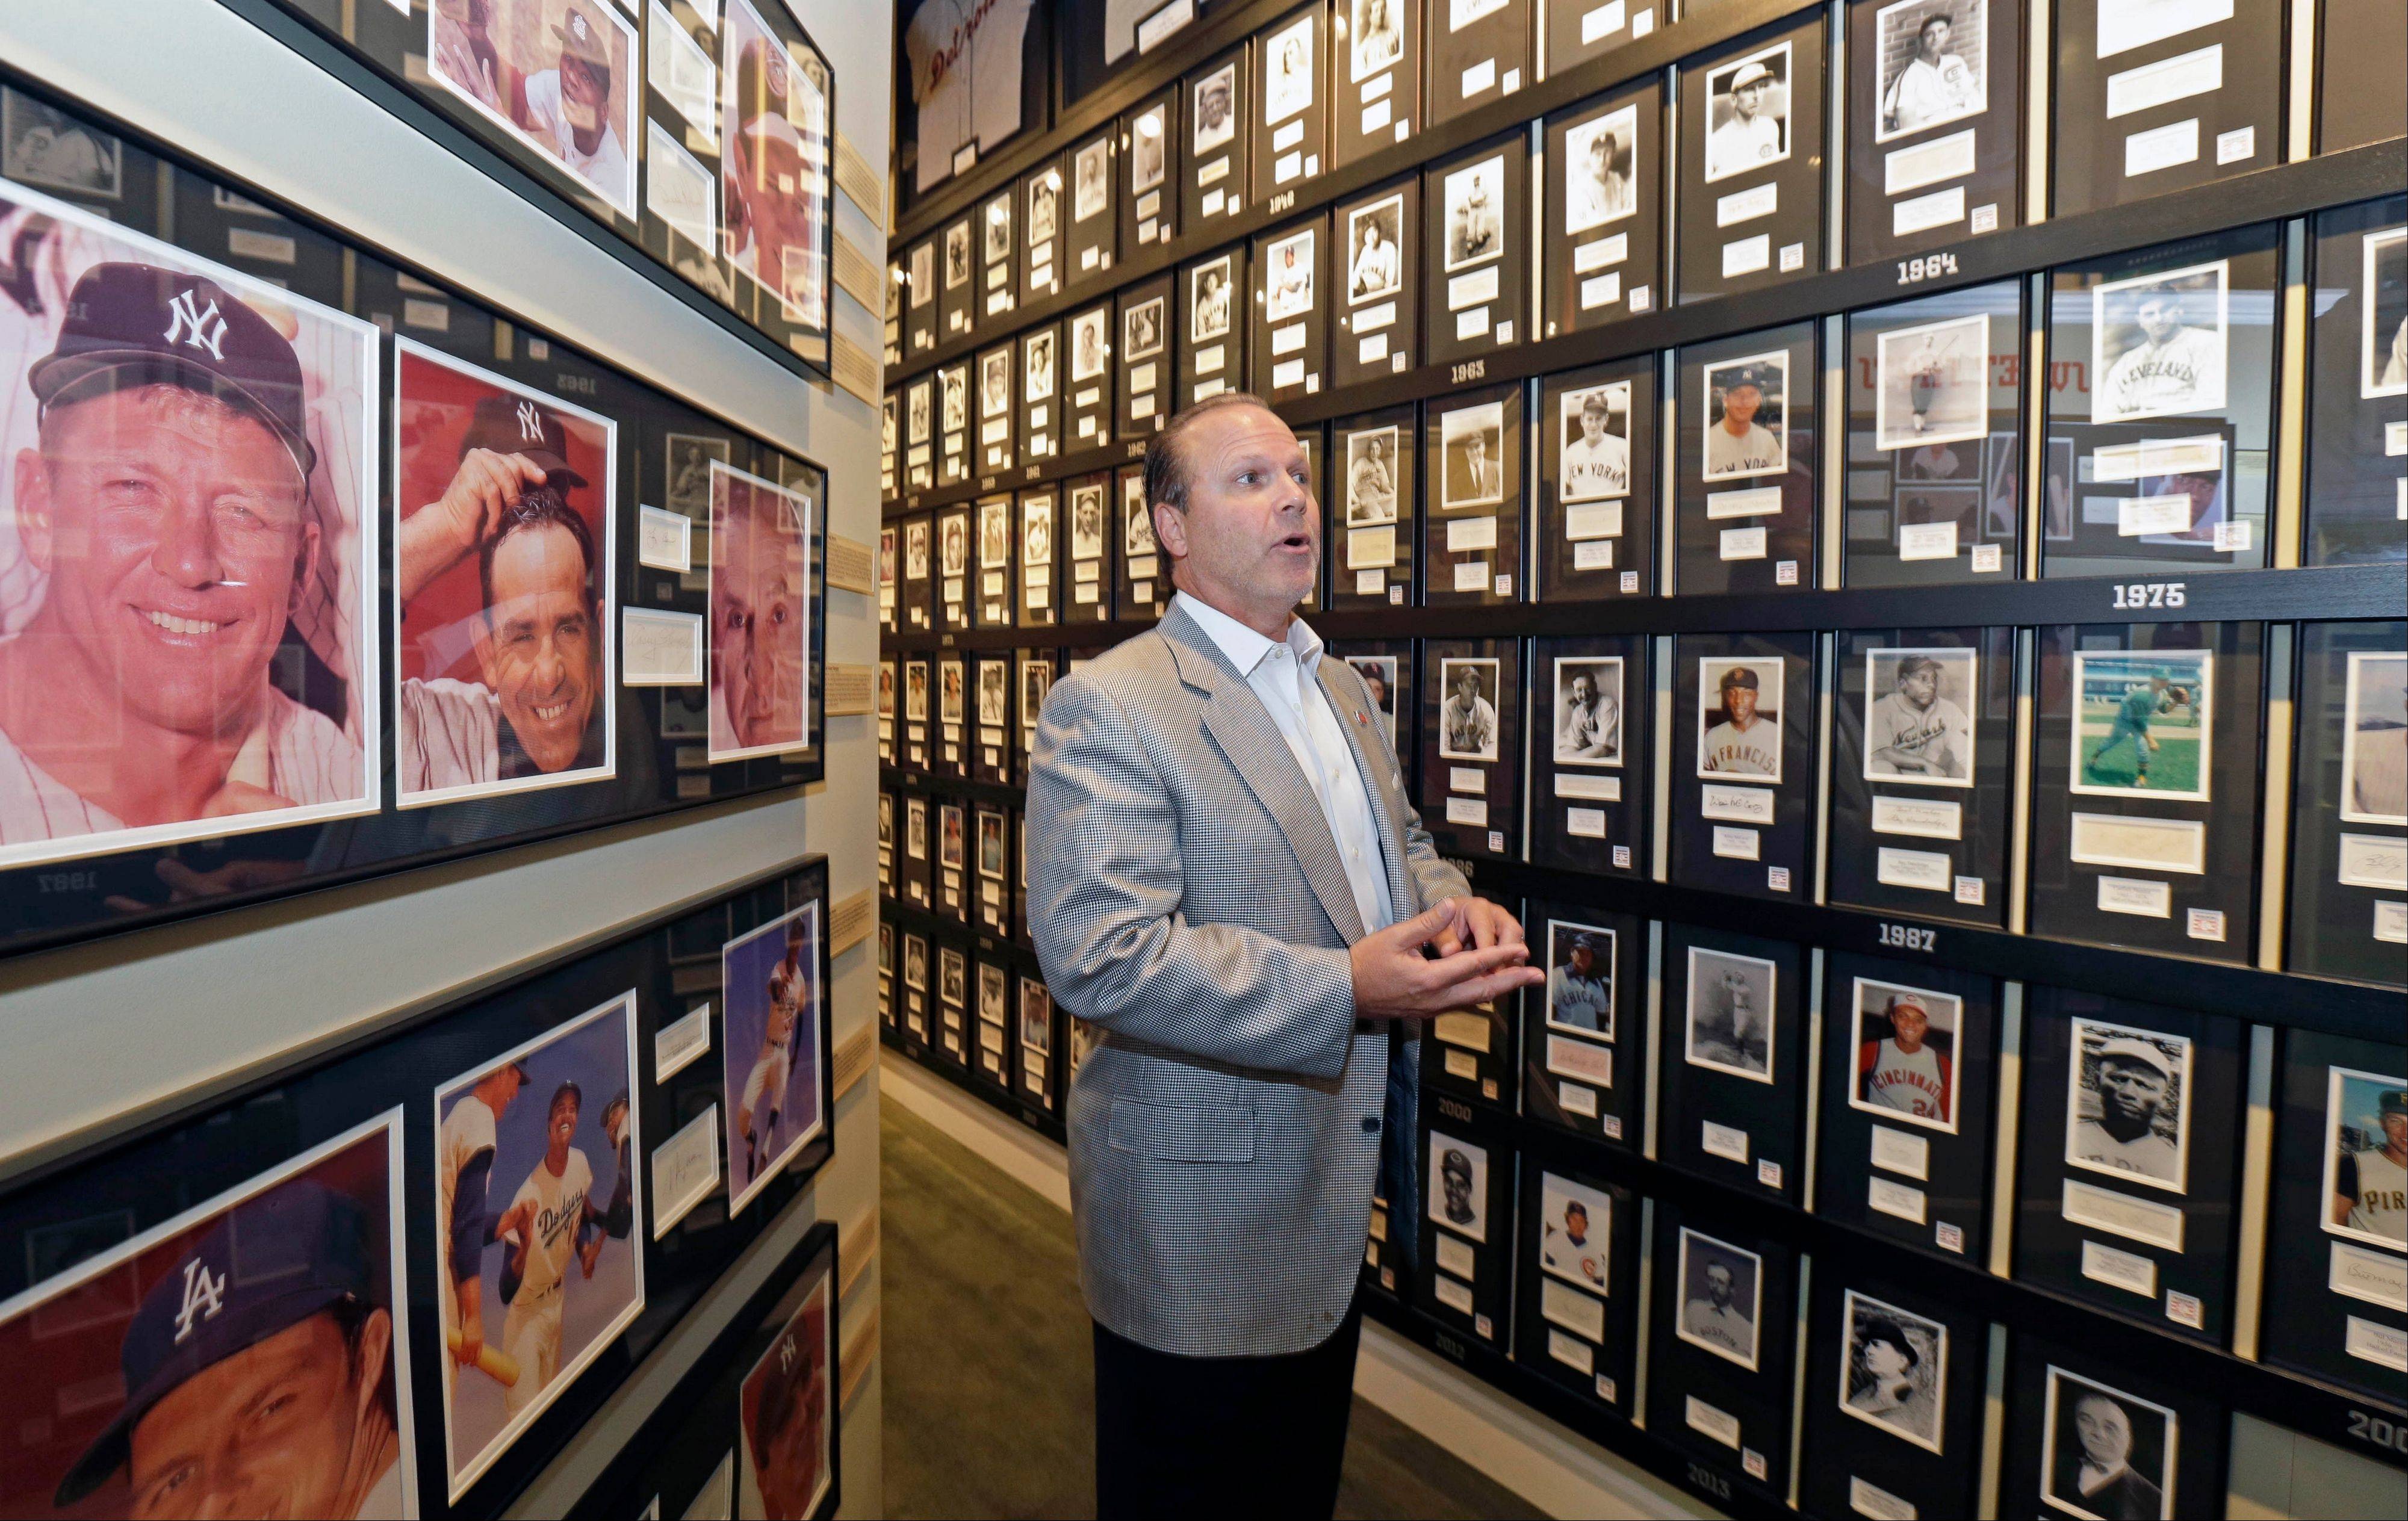 Owner Bob Crotty stands next to a wall featuring photos and autographs of all the members of baseball's Hall of Fame inside the Green Diamond Gallery in Cincinnati.